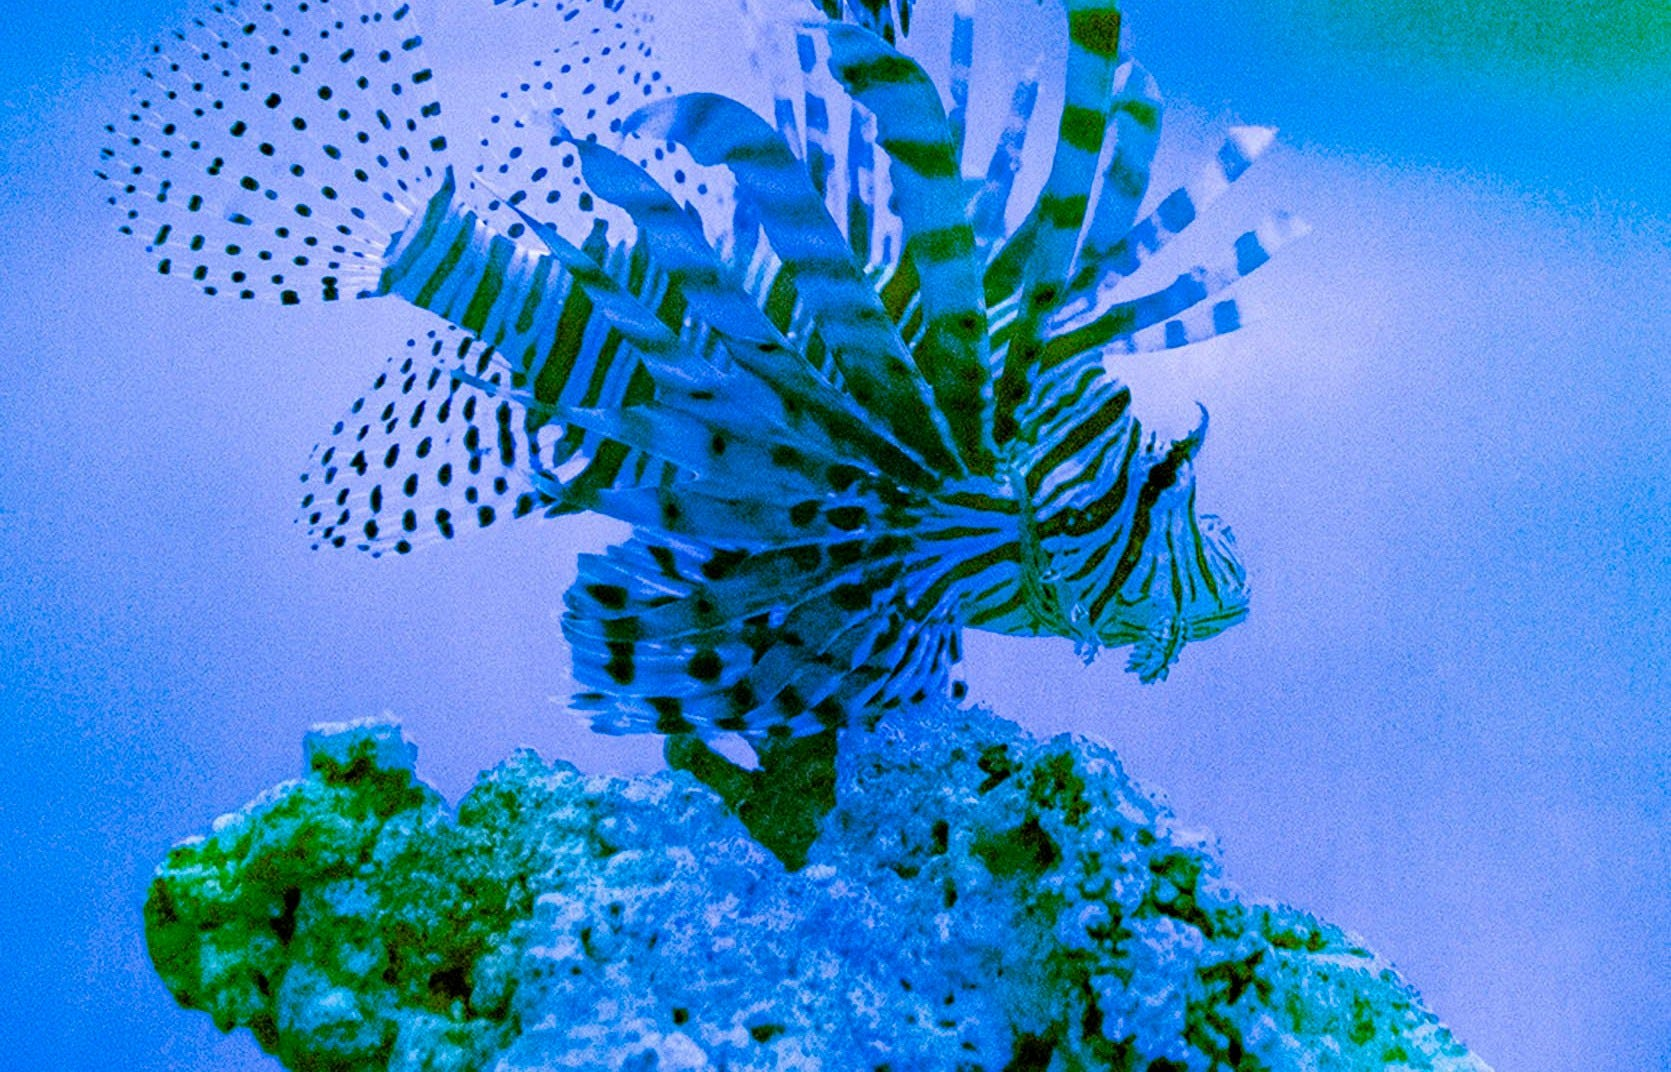 A lion fish in an aquarium at Loggerhead Marinelife Center. Carter Viss caught the lion fish snorkeling before he was injured near the Breaker's Reef.